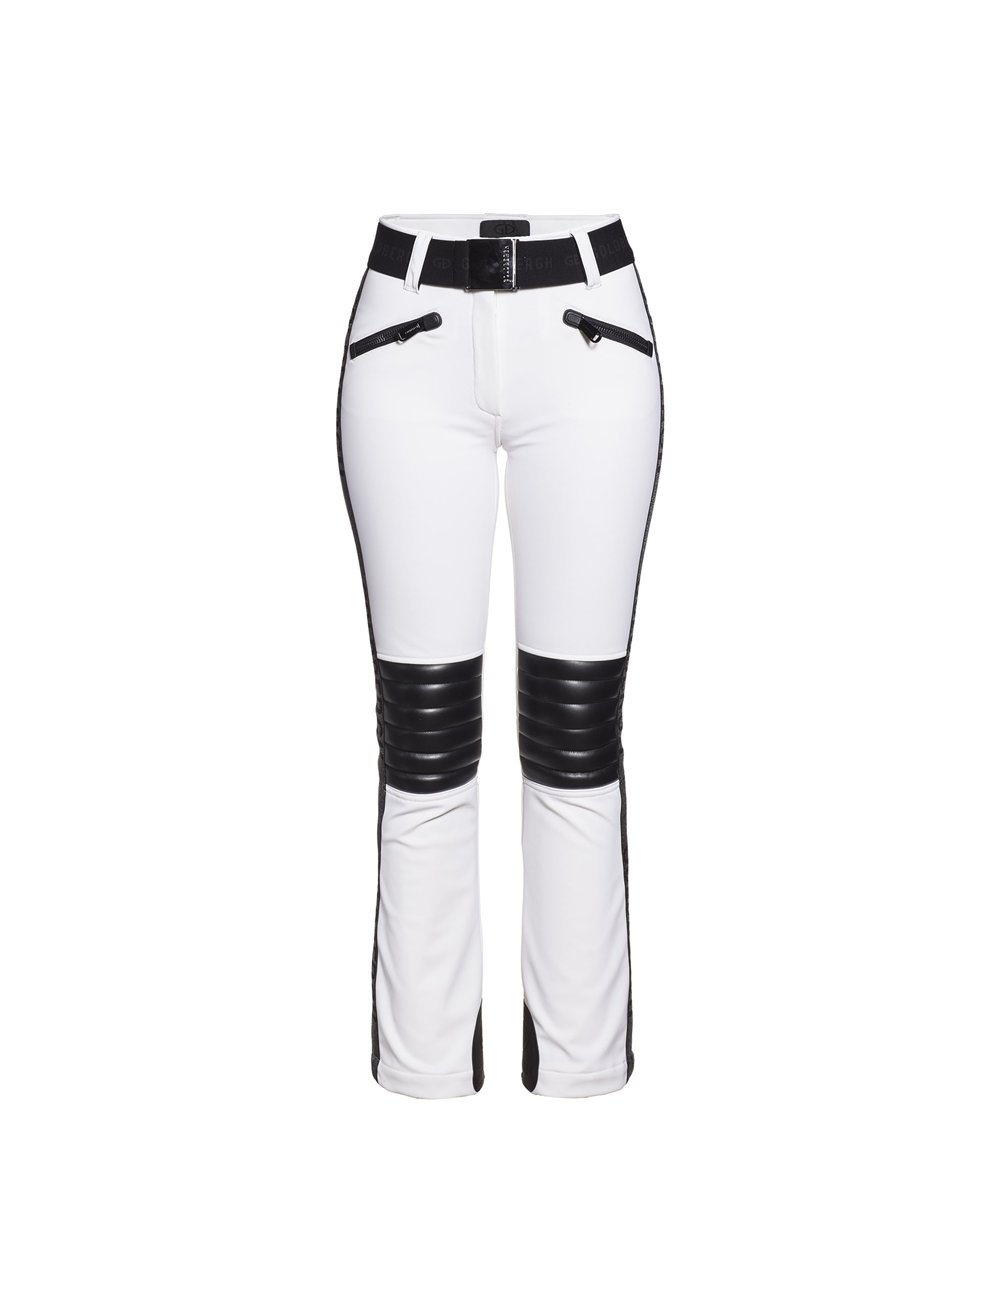 Pantalon de ski Rocky Goldbergh - BIG BOSS MEGEVE